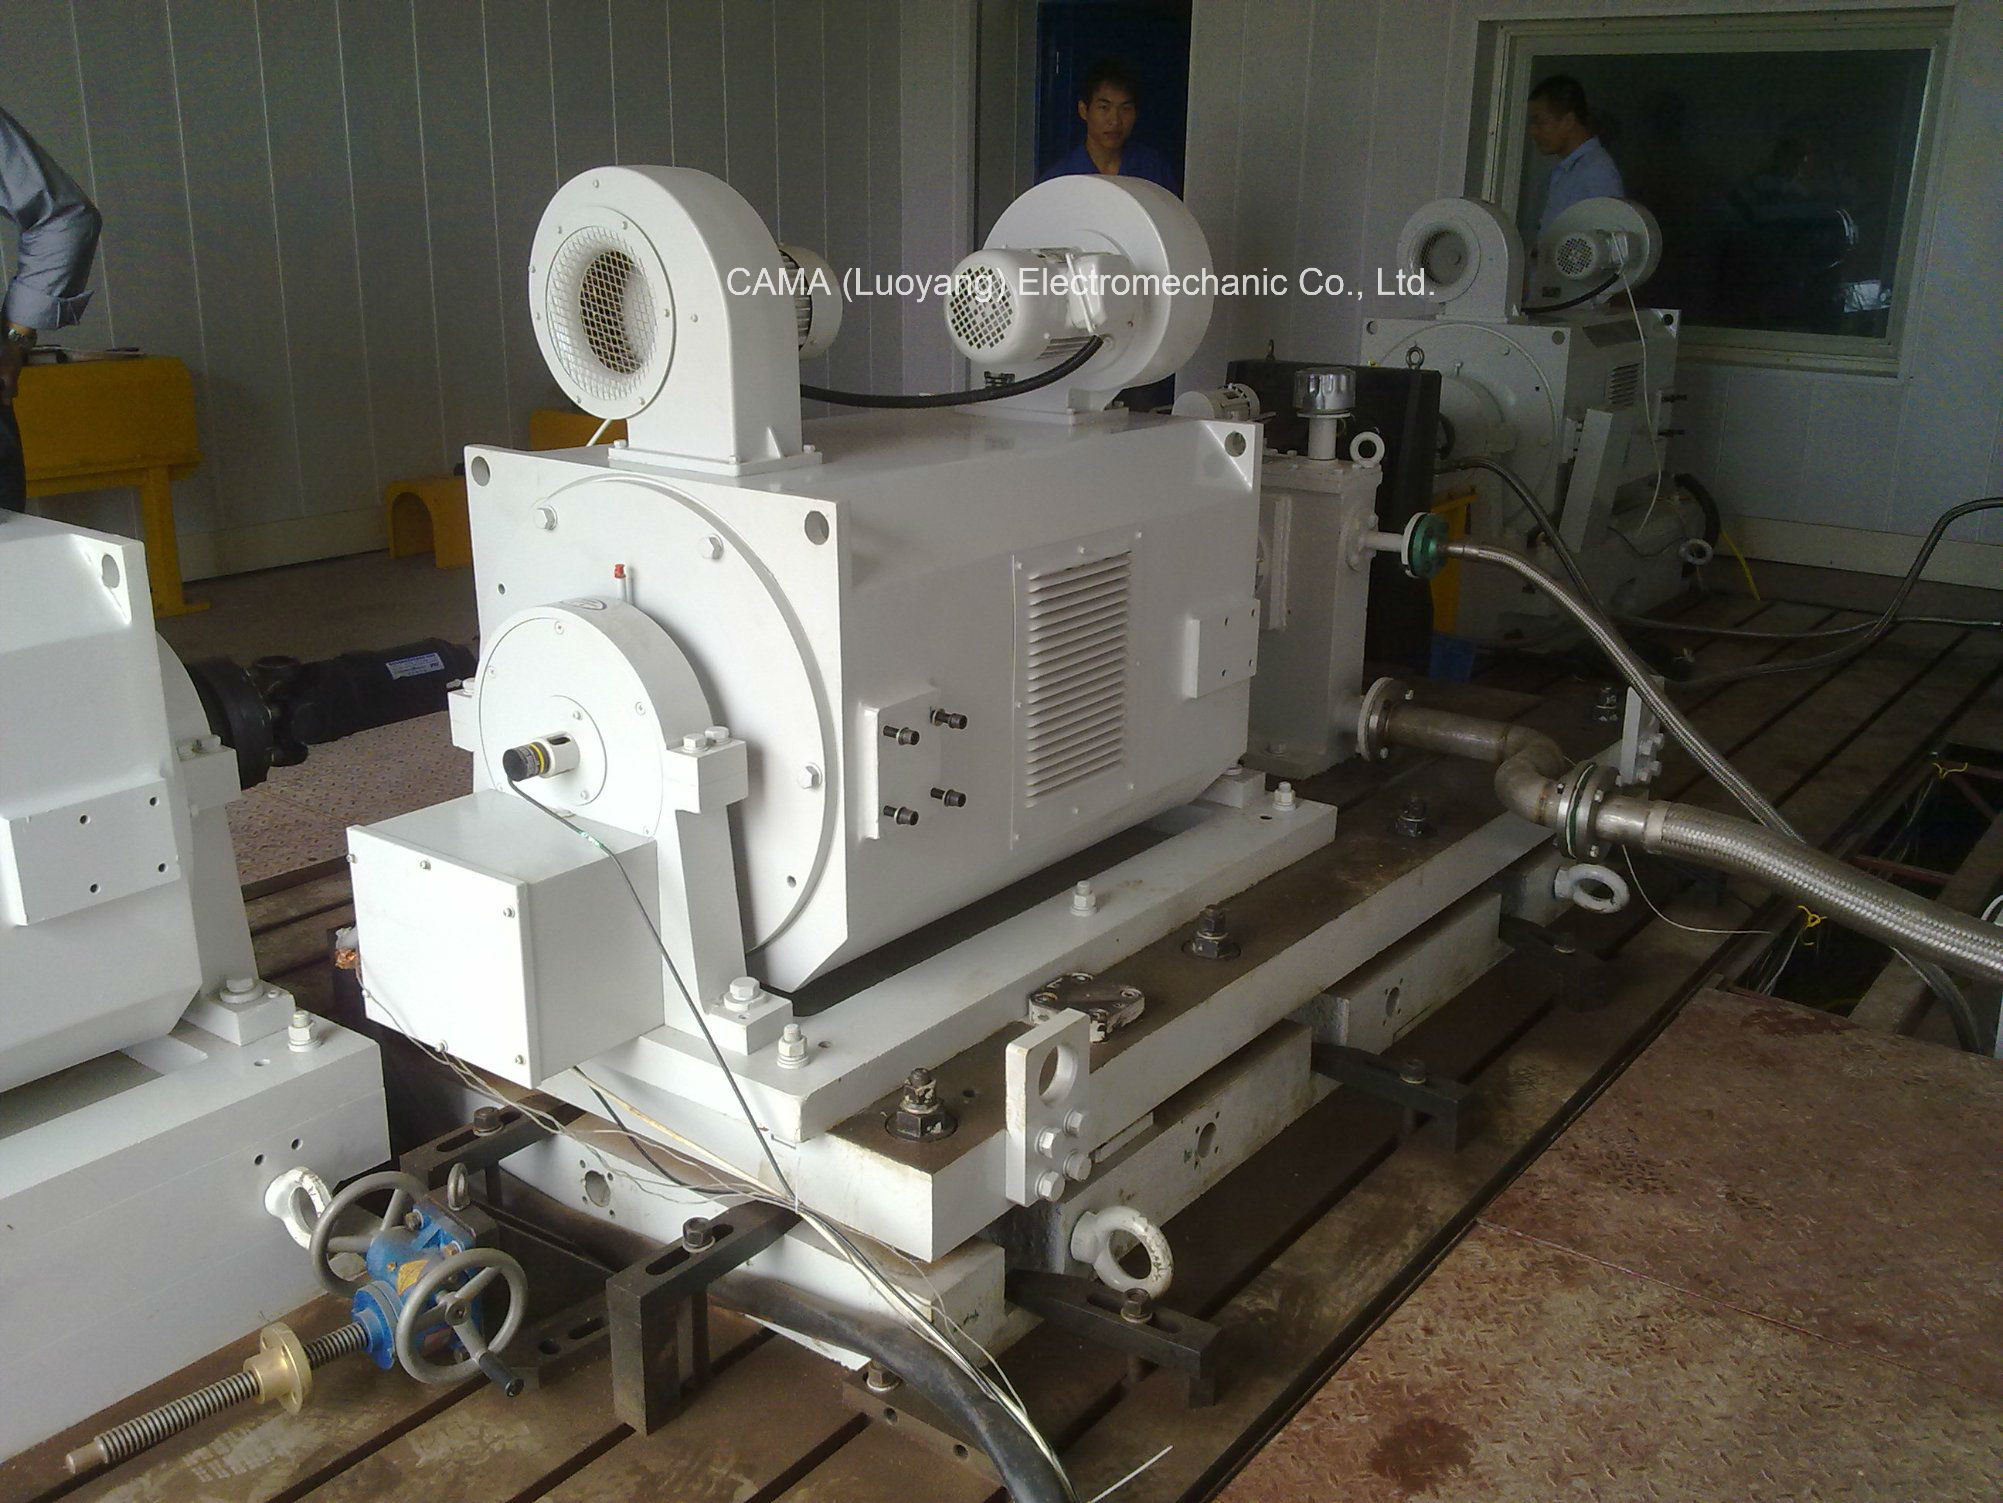 Driveline / Powertrain / Gearbox / Transmission Test Bench